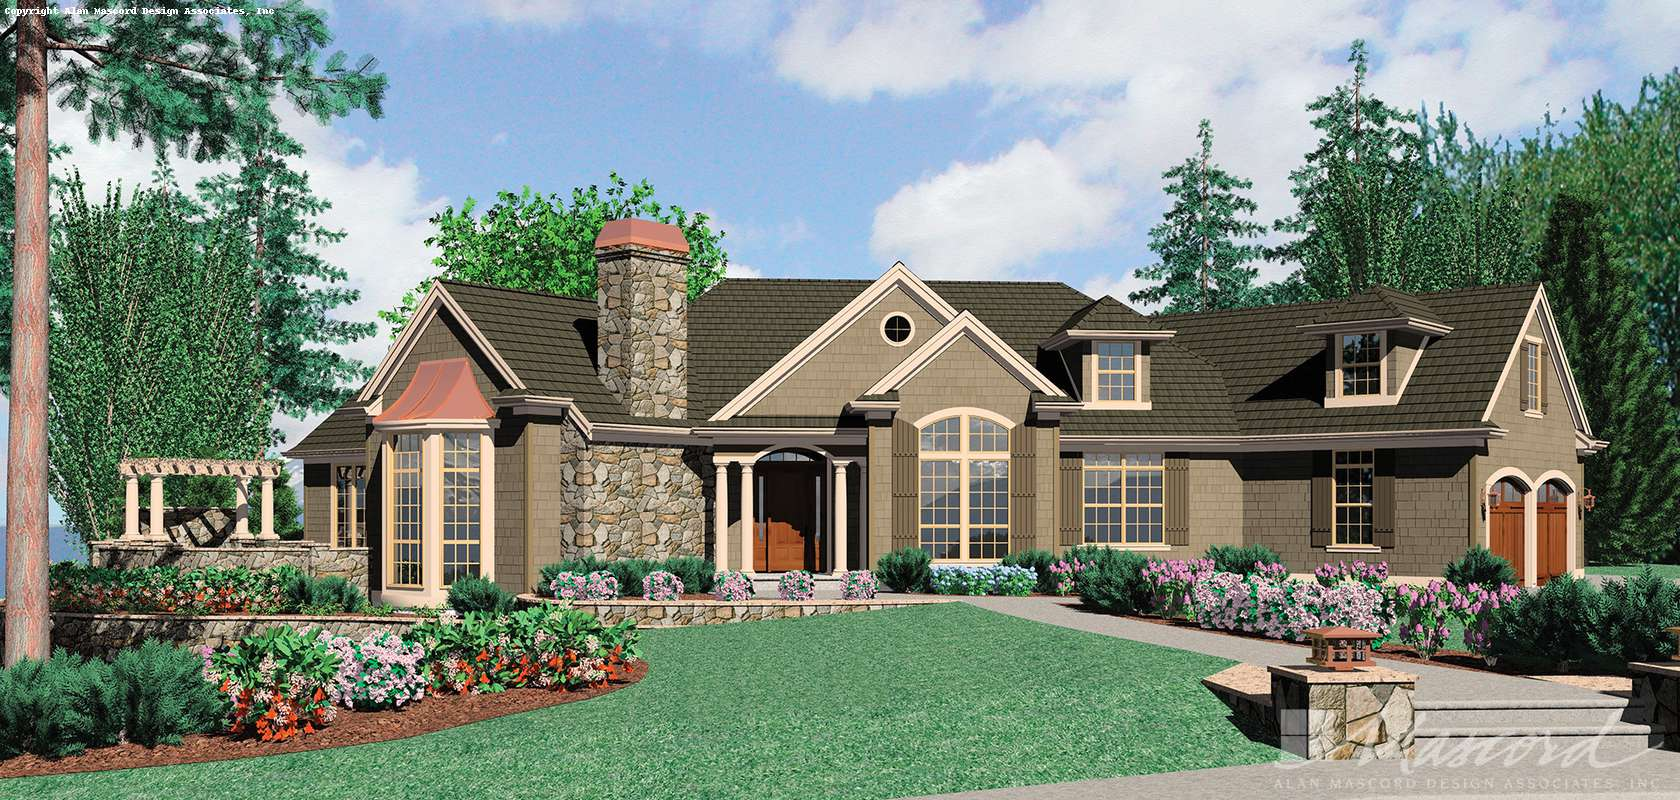 Mascord House Plan B1233: The Cainsville